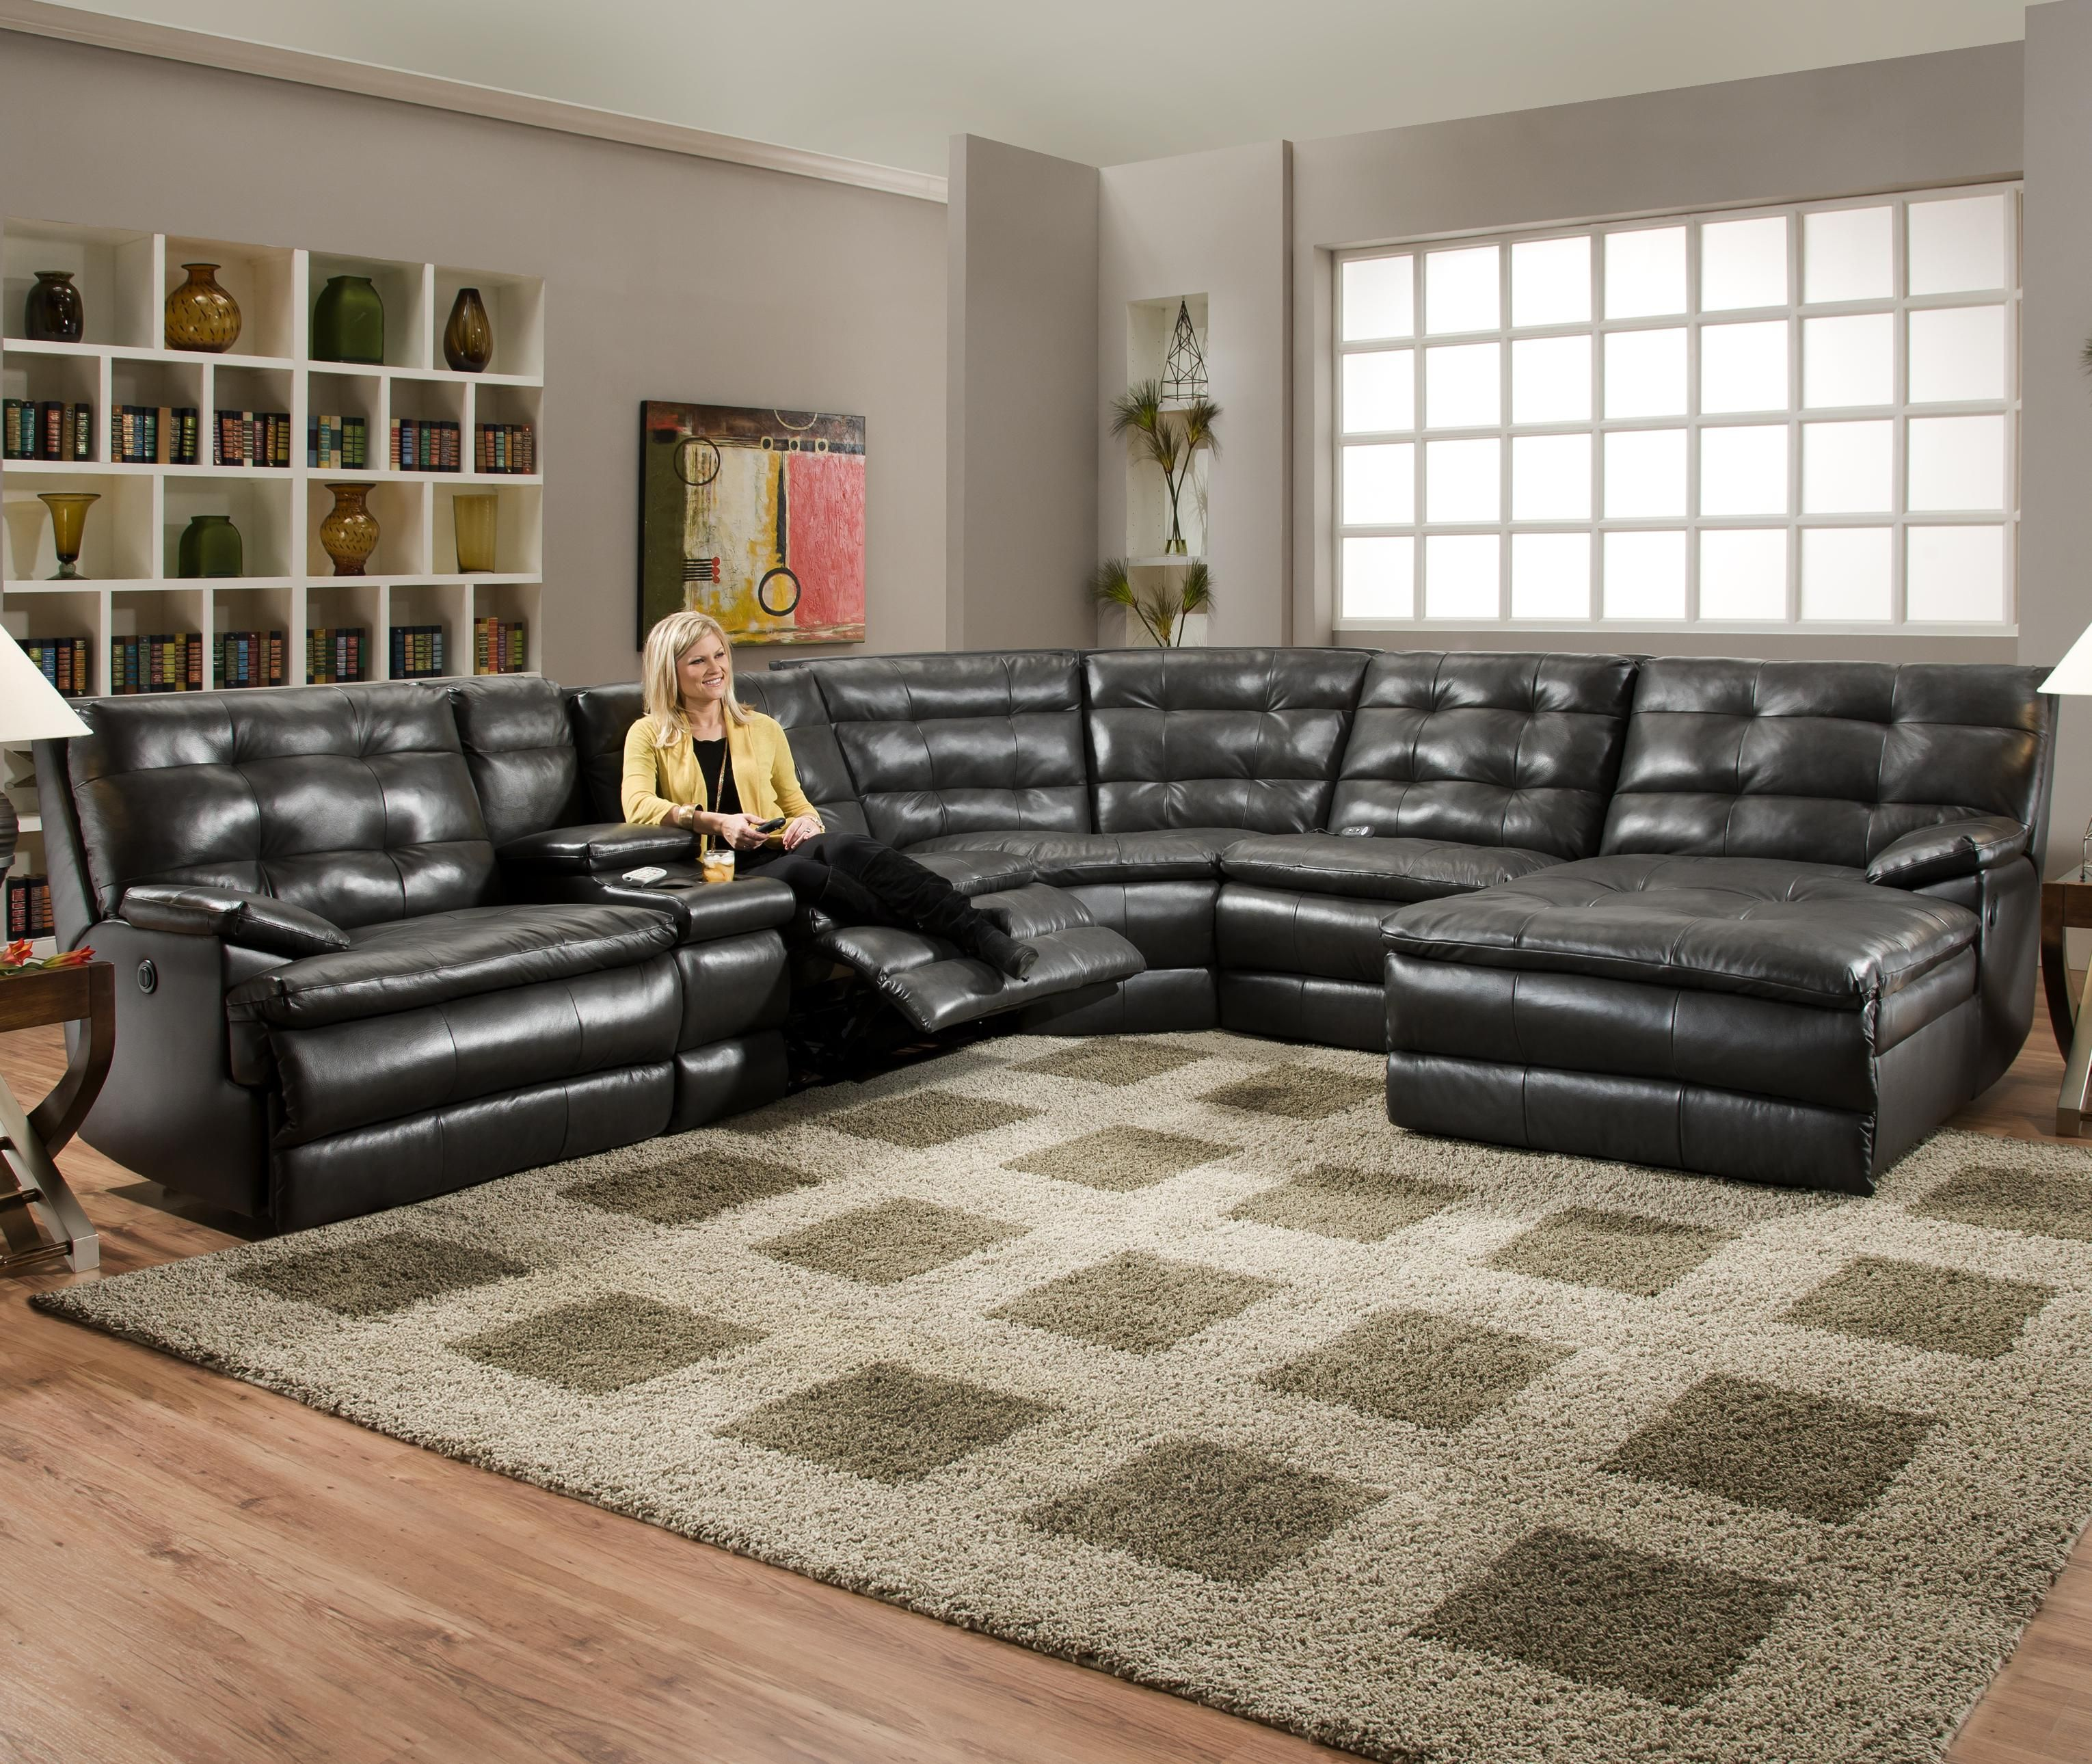 sofa also large ideas and living luxury window furniture sectional oversized interior with collection pillows room toss awesome admirable sofas for sets